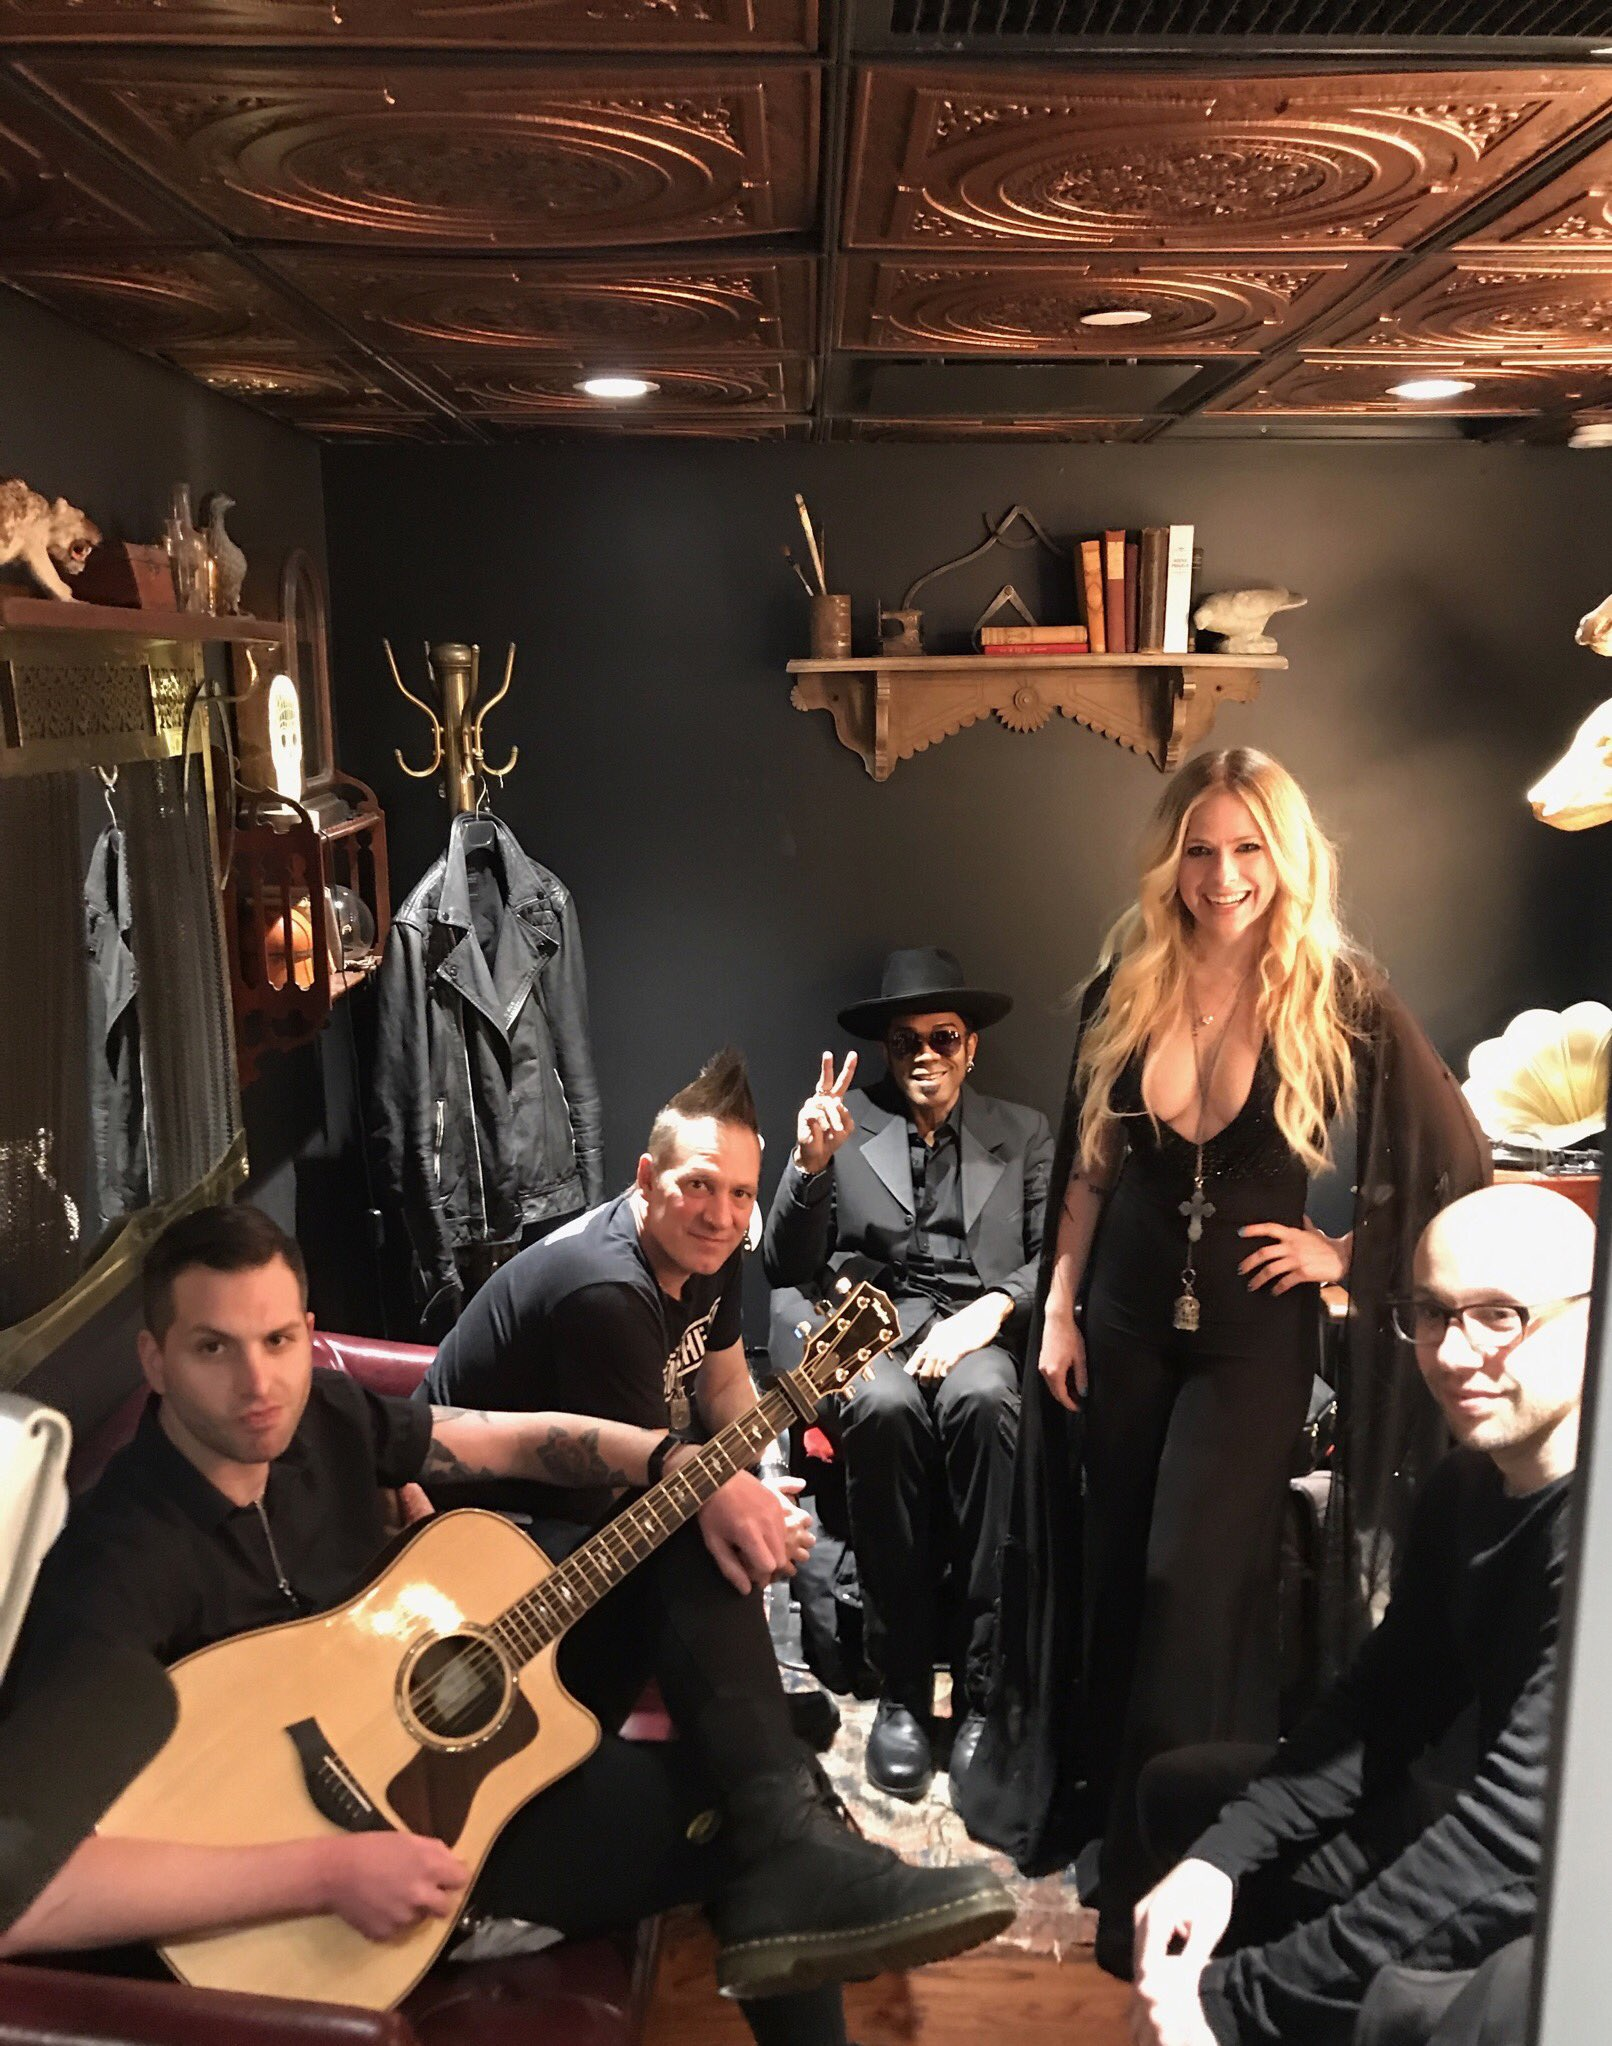 Loved being with my band and my fam for album release week ������ #HeadAboveWater https://t.co/7oNQELbKJN